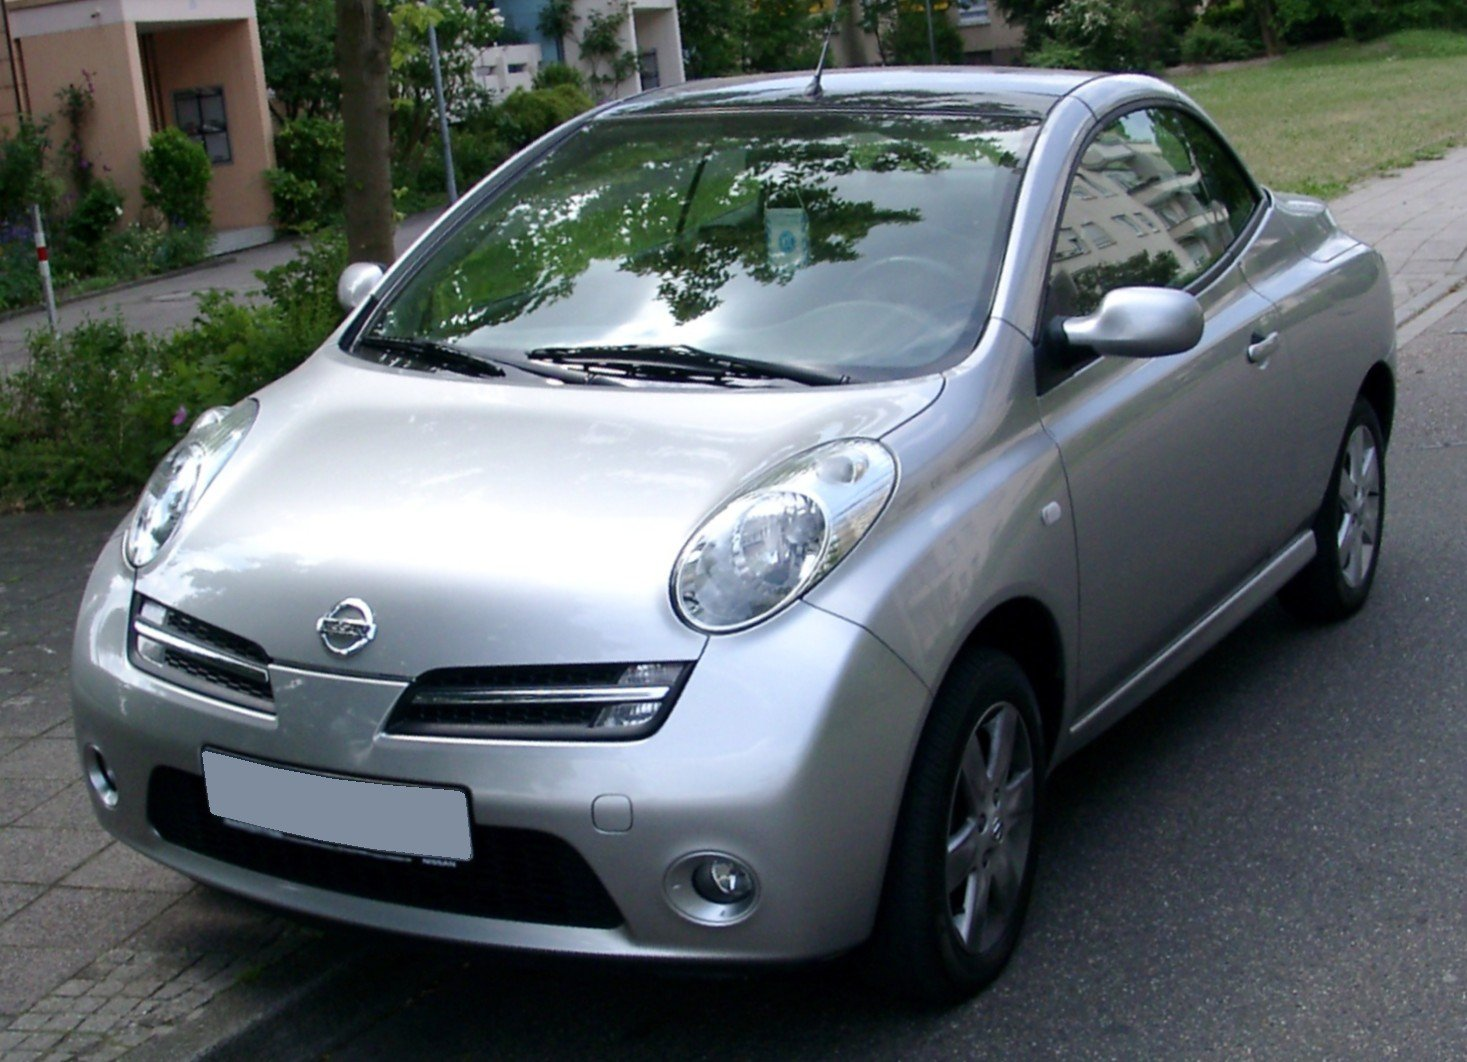 2012 nissan micra coupe cabriolet k12c pictures information and specs auto. Black Bedroom Furniture Sets. Home Design Ideas